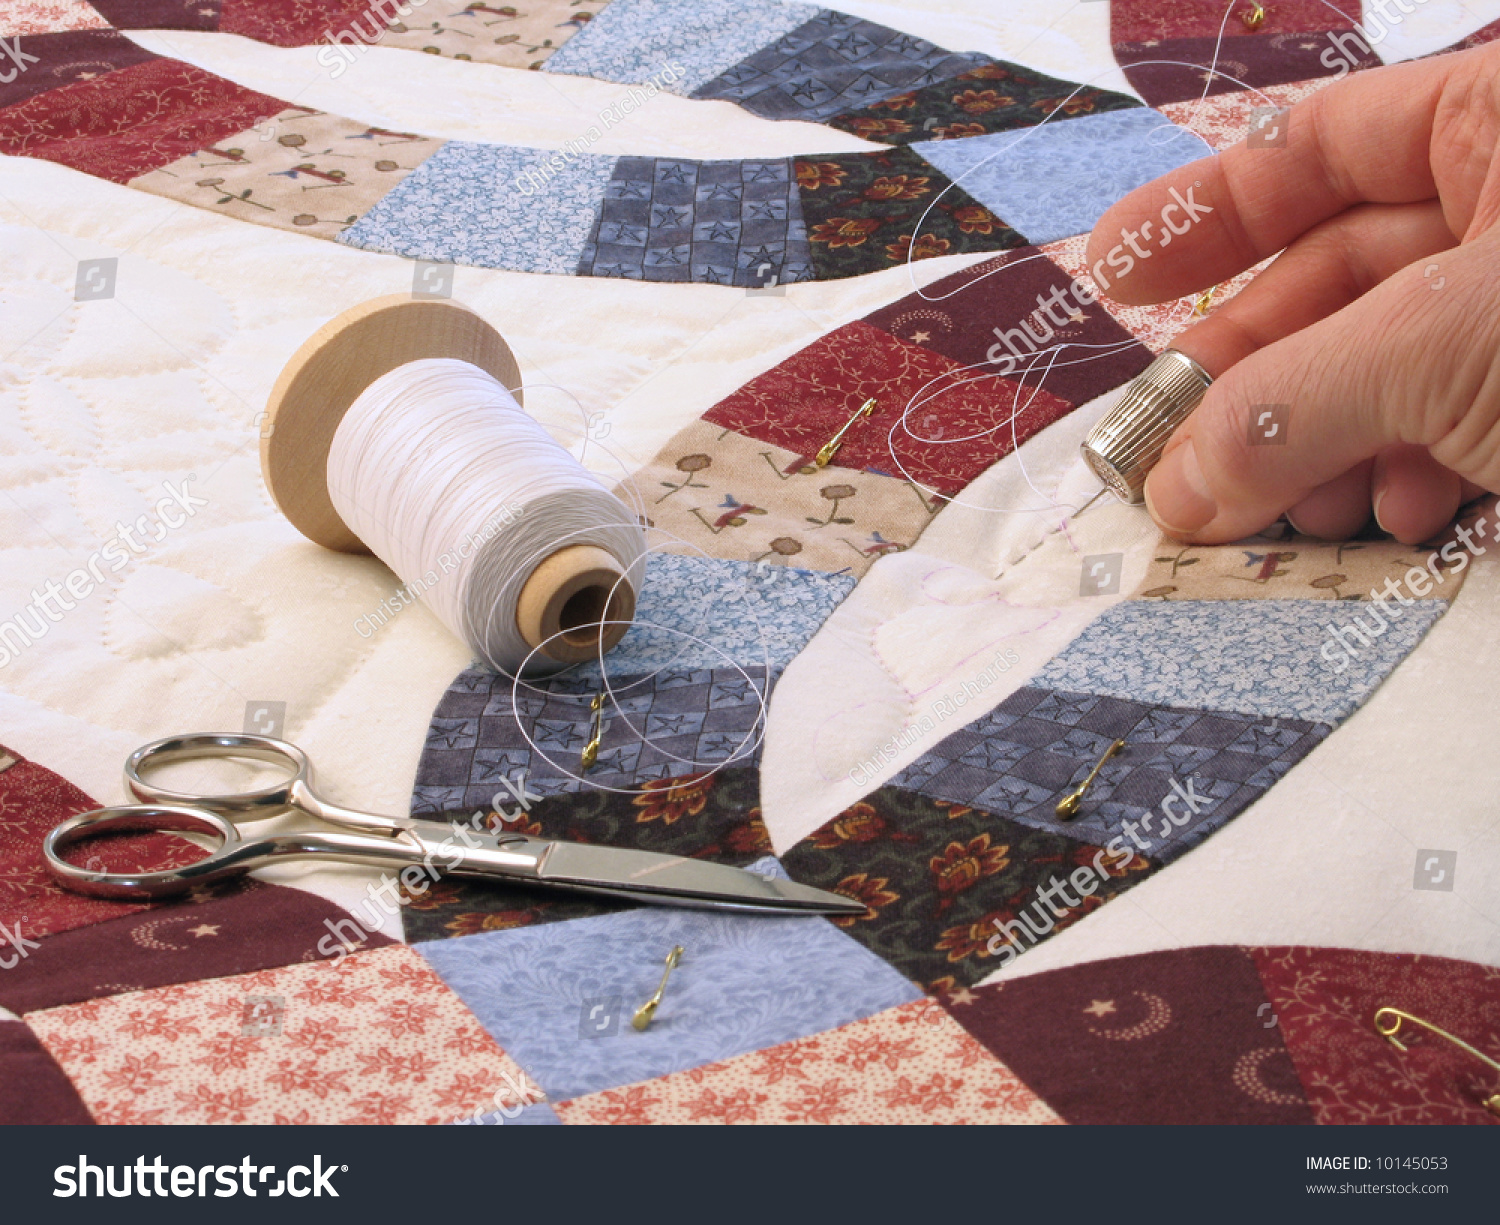 Handquilting Doublewedding Ring Pattern Quilt Stock Photo 10145053 ...